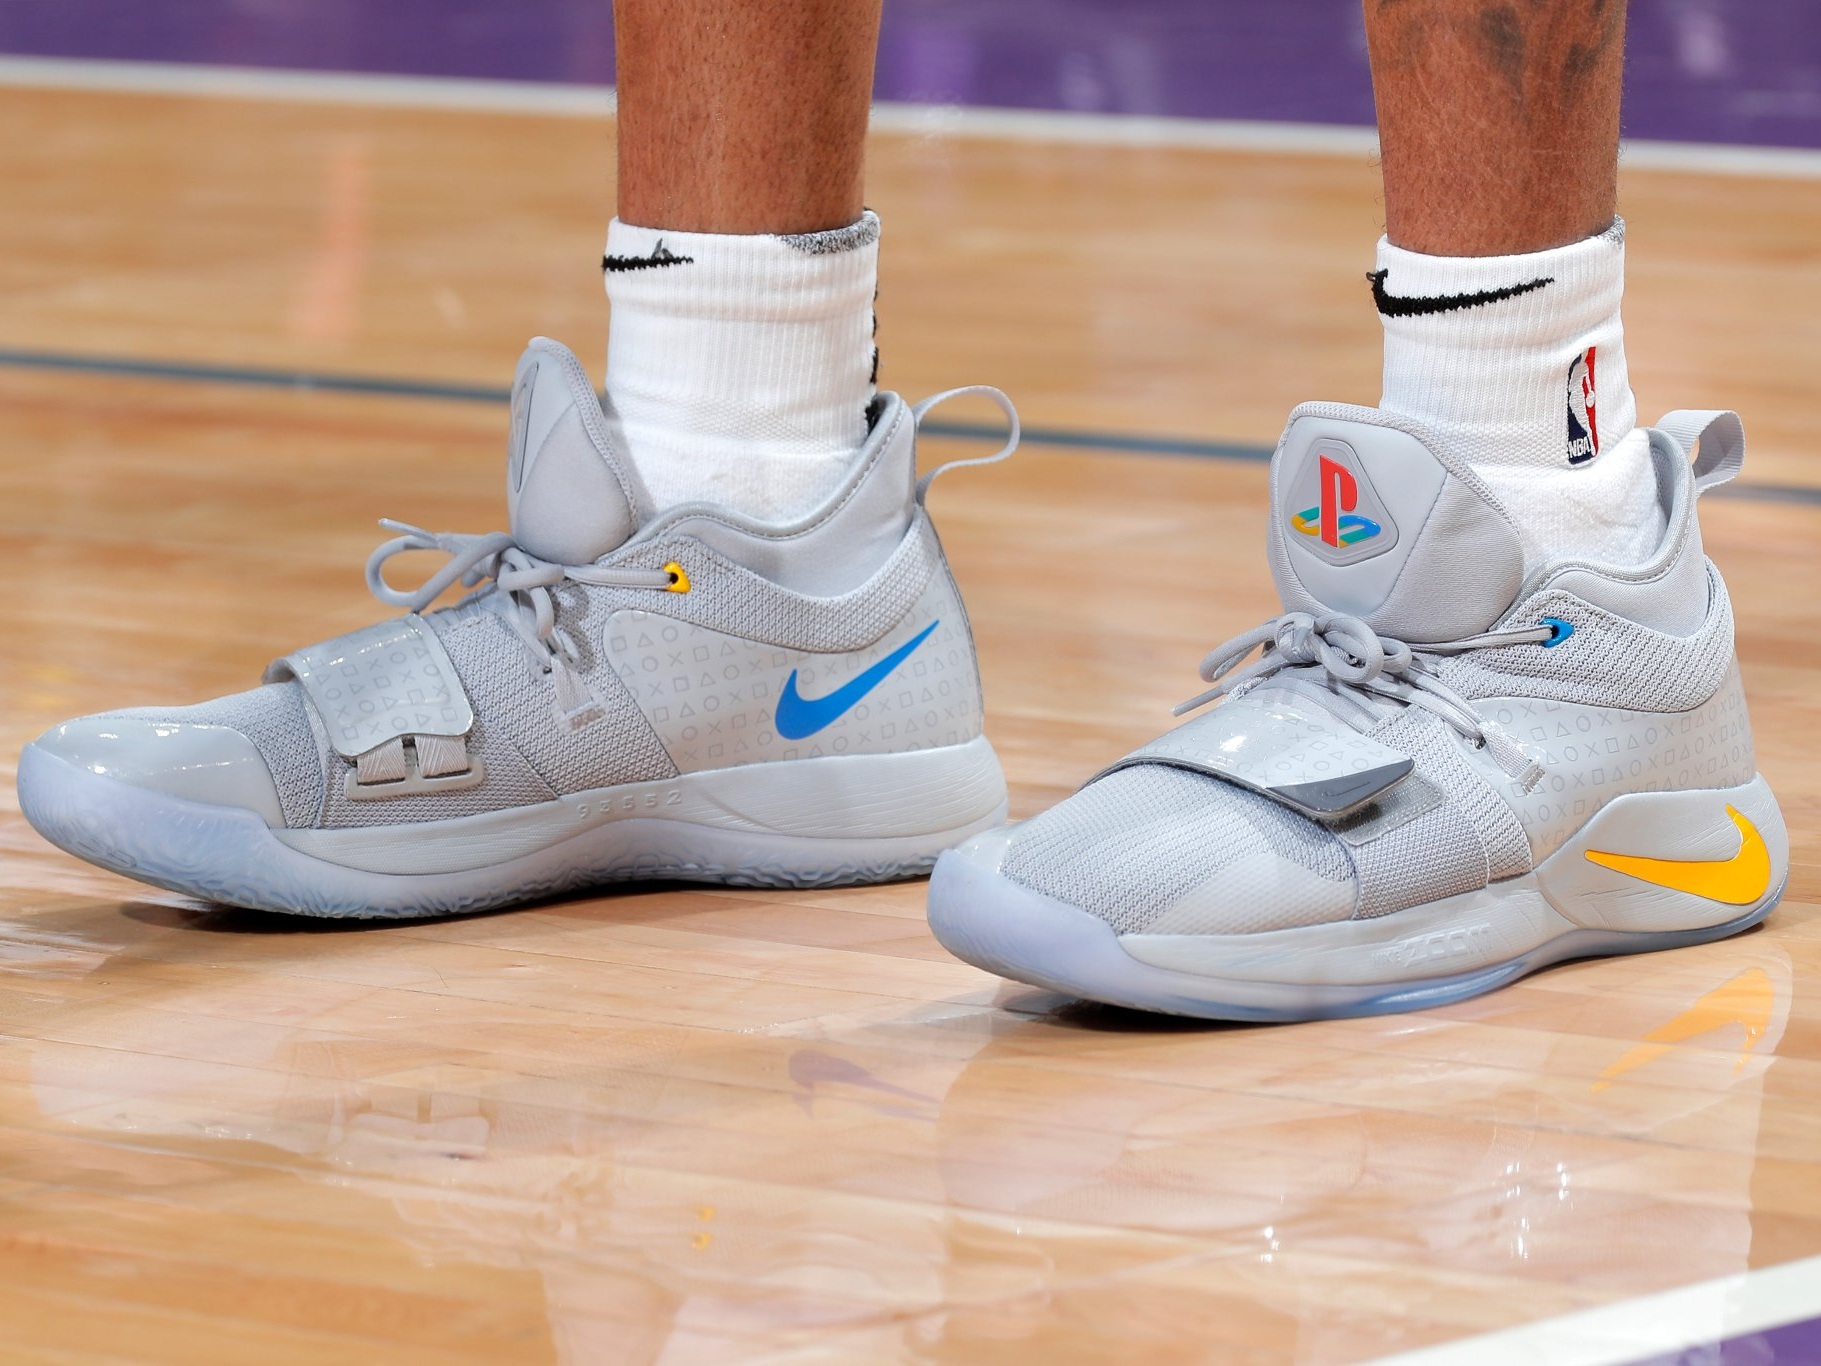 D'angelo Russell drops 44 with the PlayStation x Nike PG 2.5 🔥🔥 - Brooklyn Nets vs. Sacramento Kings | March 19, 201944 Points12 Assists4 Rebounds4 Steals17-33 Shooting